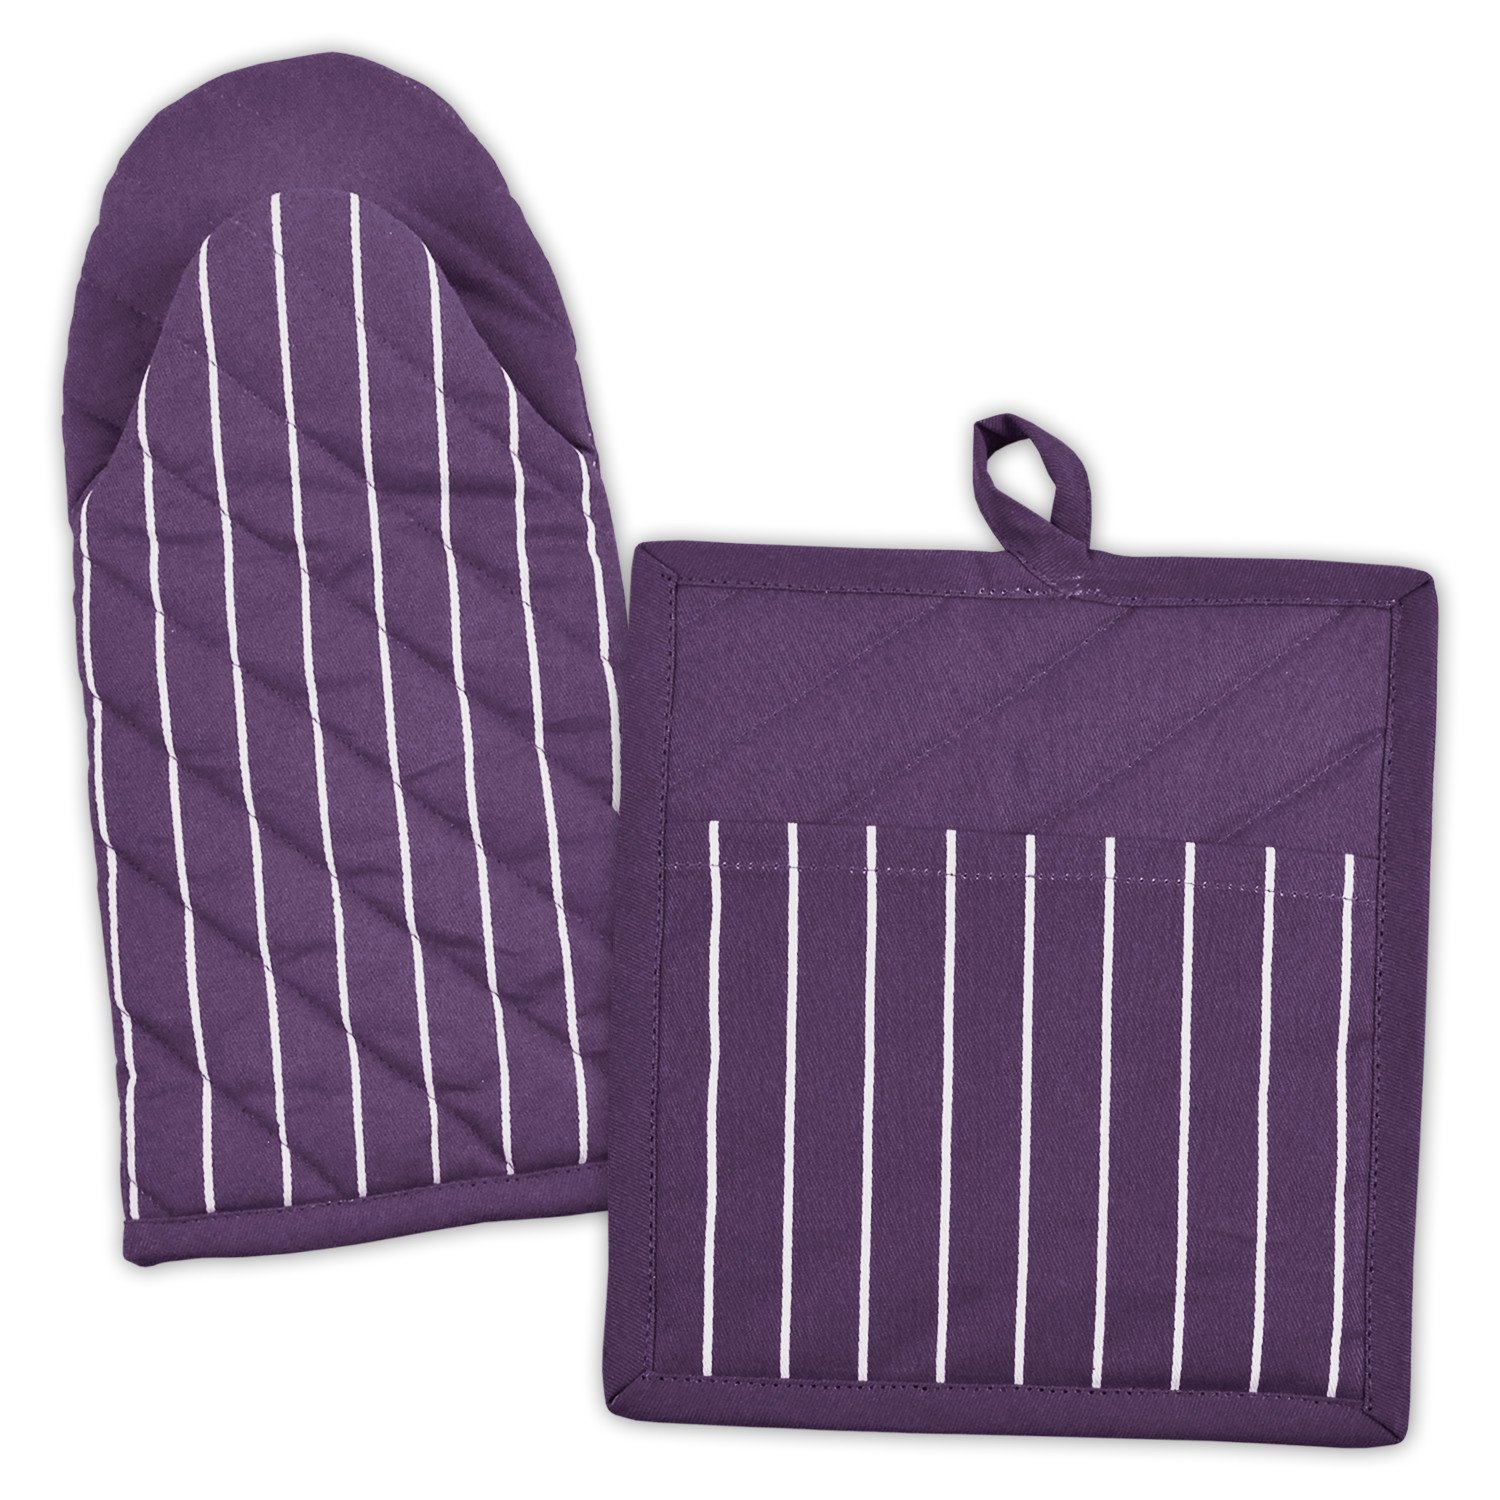 DII 100% Cotton, Machine Washable, Everyday Kitchen Basic, Stripe Commercial Grade, Restaurant Quality Chef Oven Mitt and Pot Holder Gift Set, Eggplant